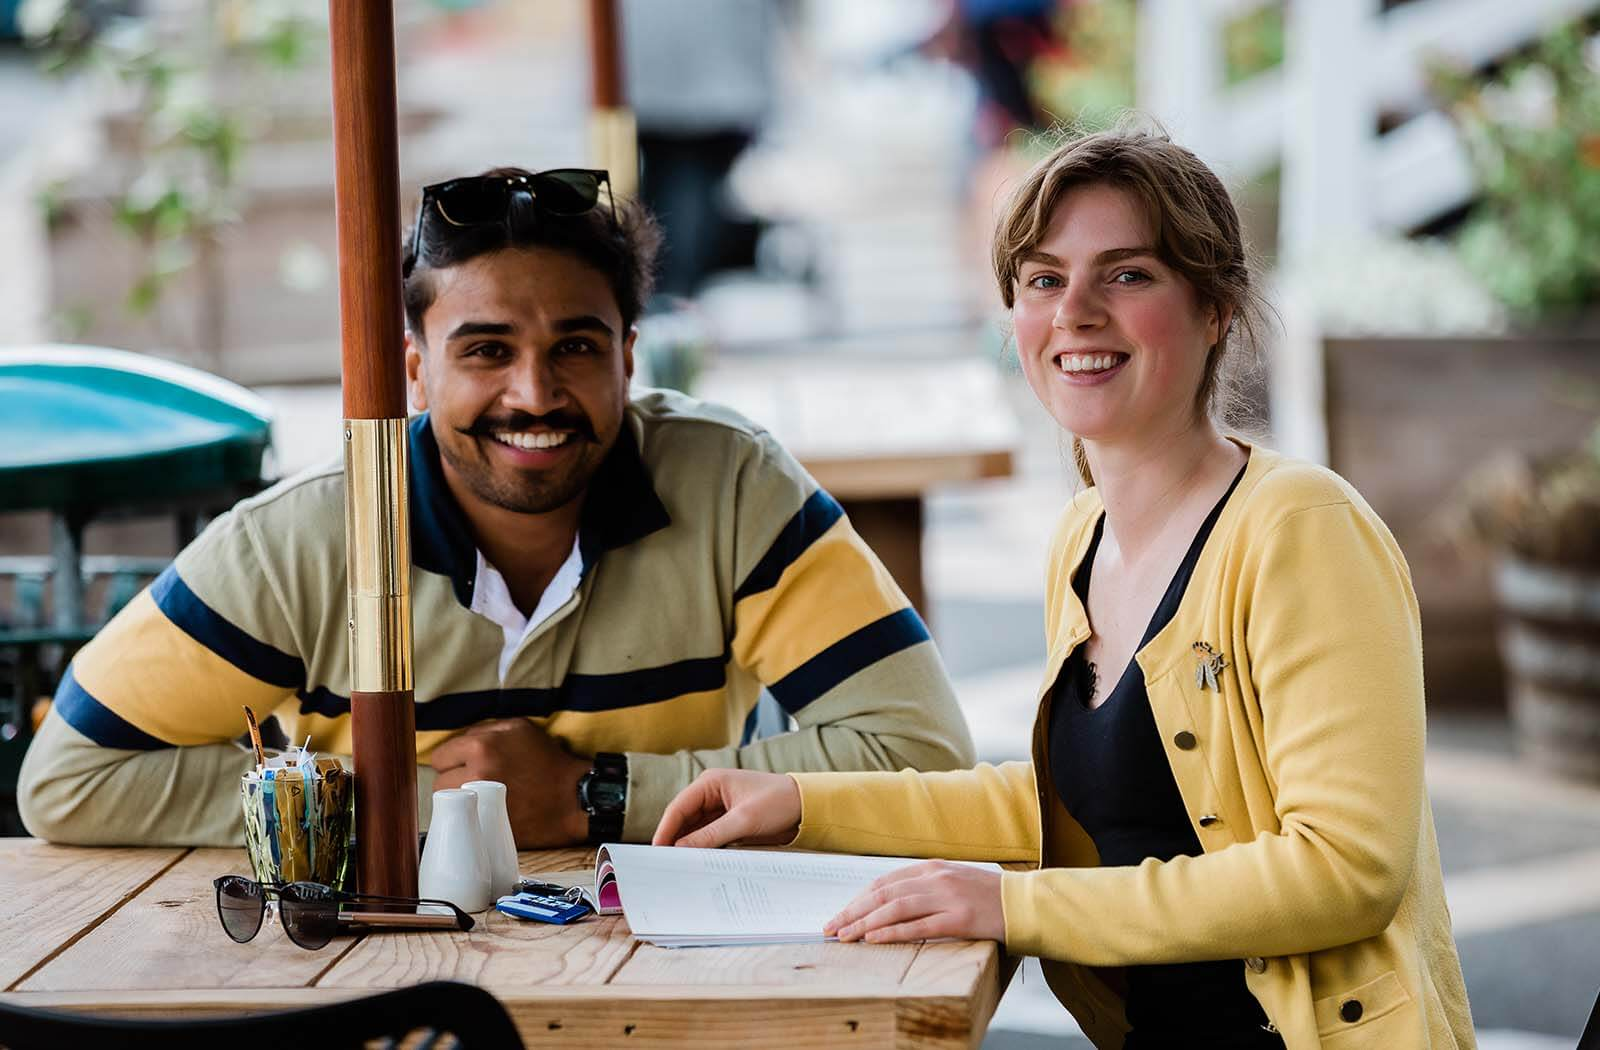 Business Support for small businesses in South Waikato, New Zealand